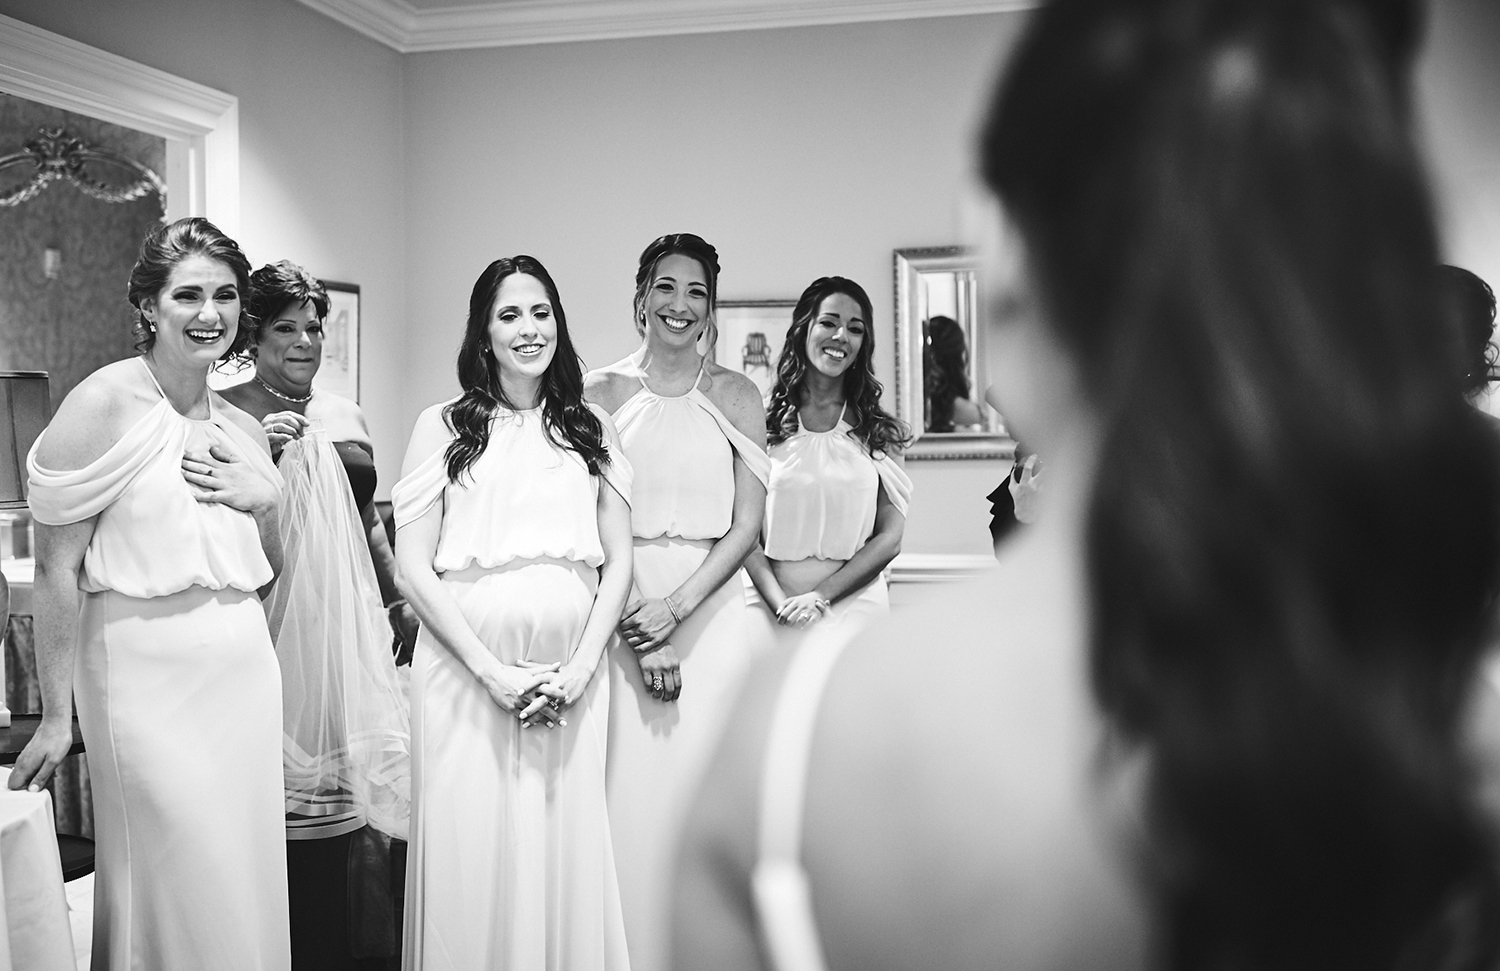 180519_PalaceatSomersetParkWeddingPhotography_NJWeddingPhotographer_By_BriJohnsonWeddings_0033.jpg